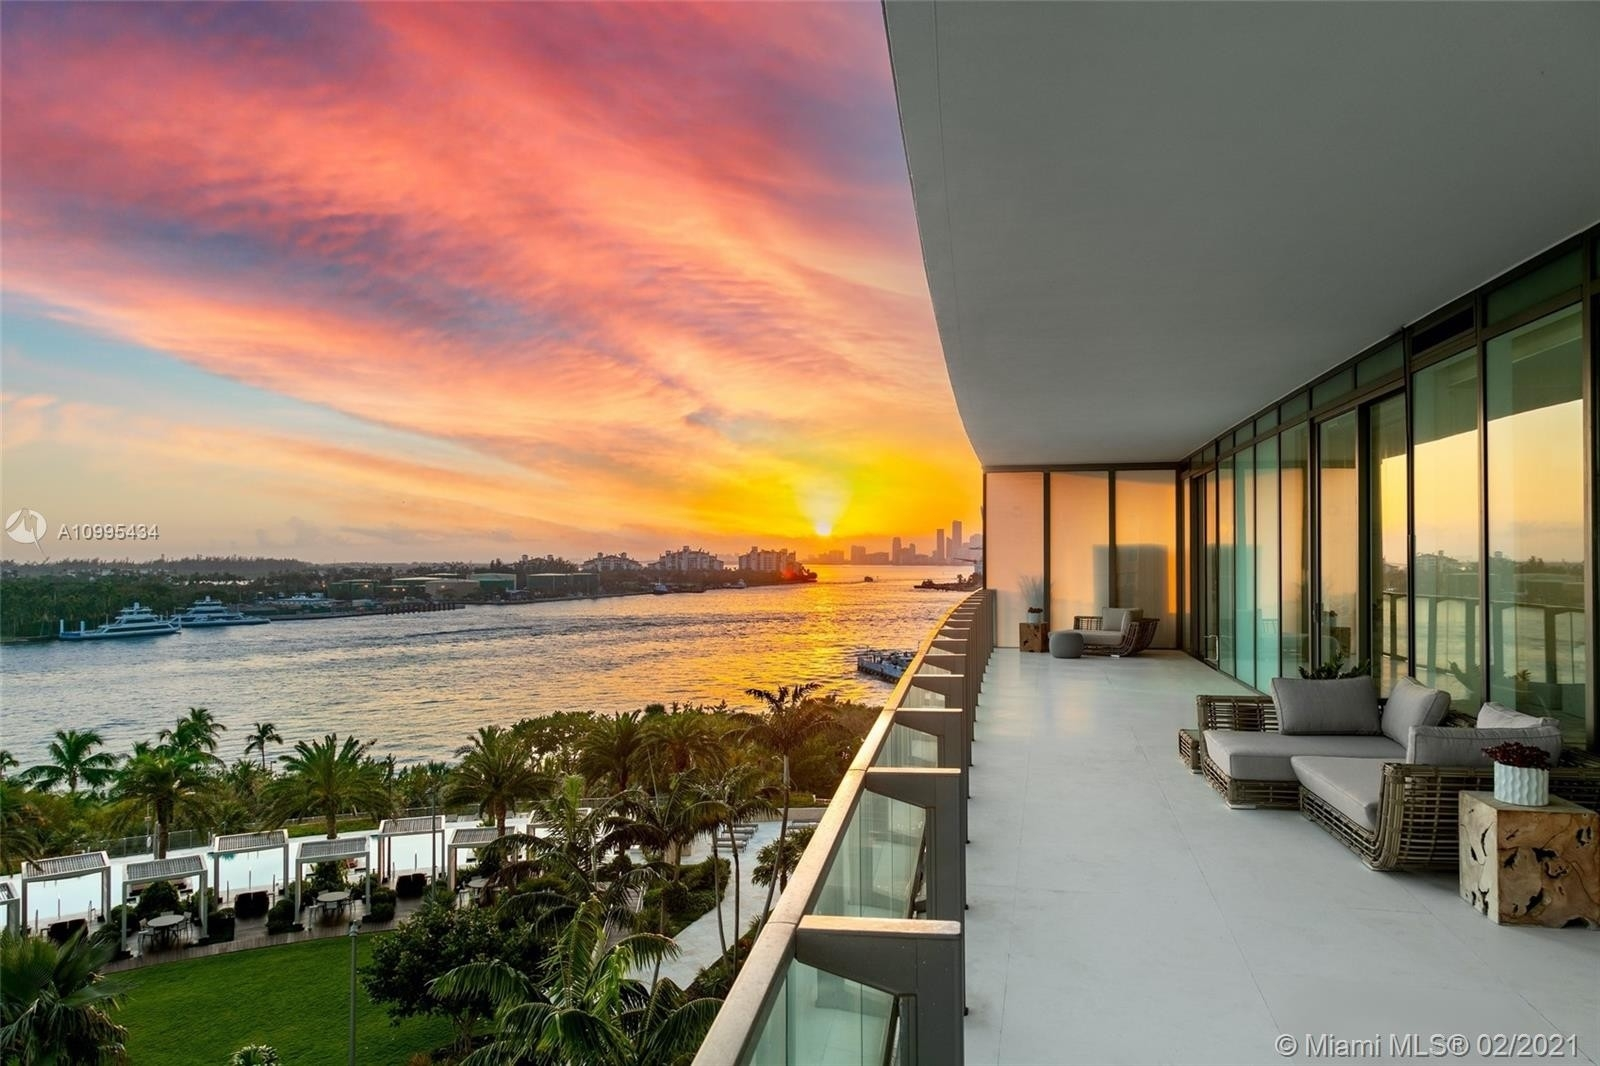 Condominium 在 800 S Pointe Dr , 801 Miami Beach